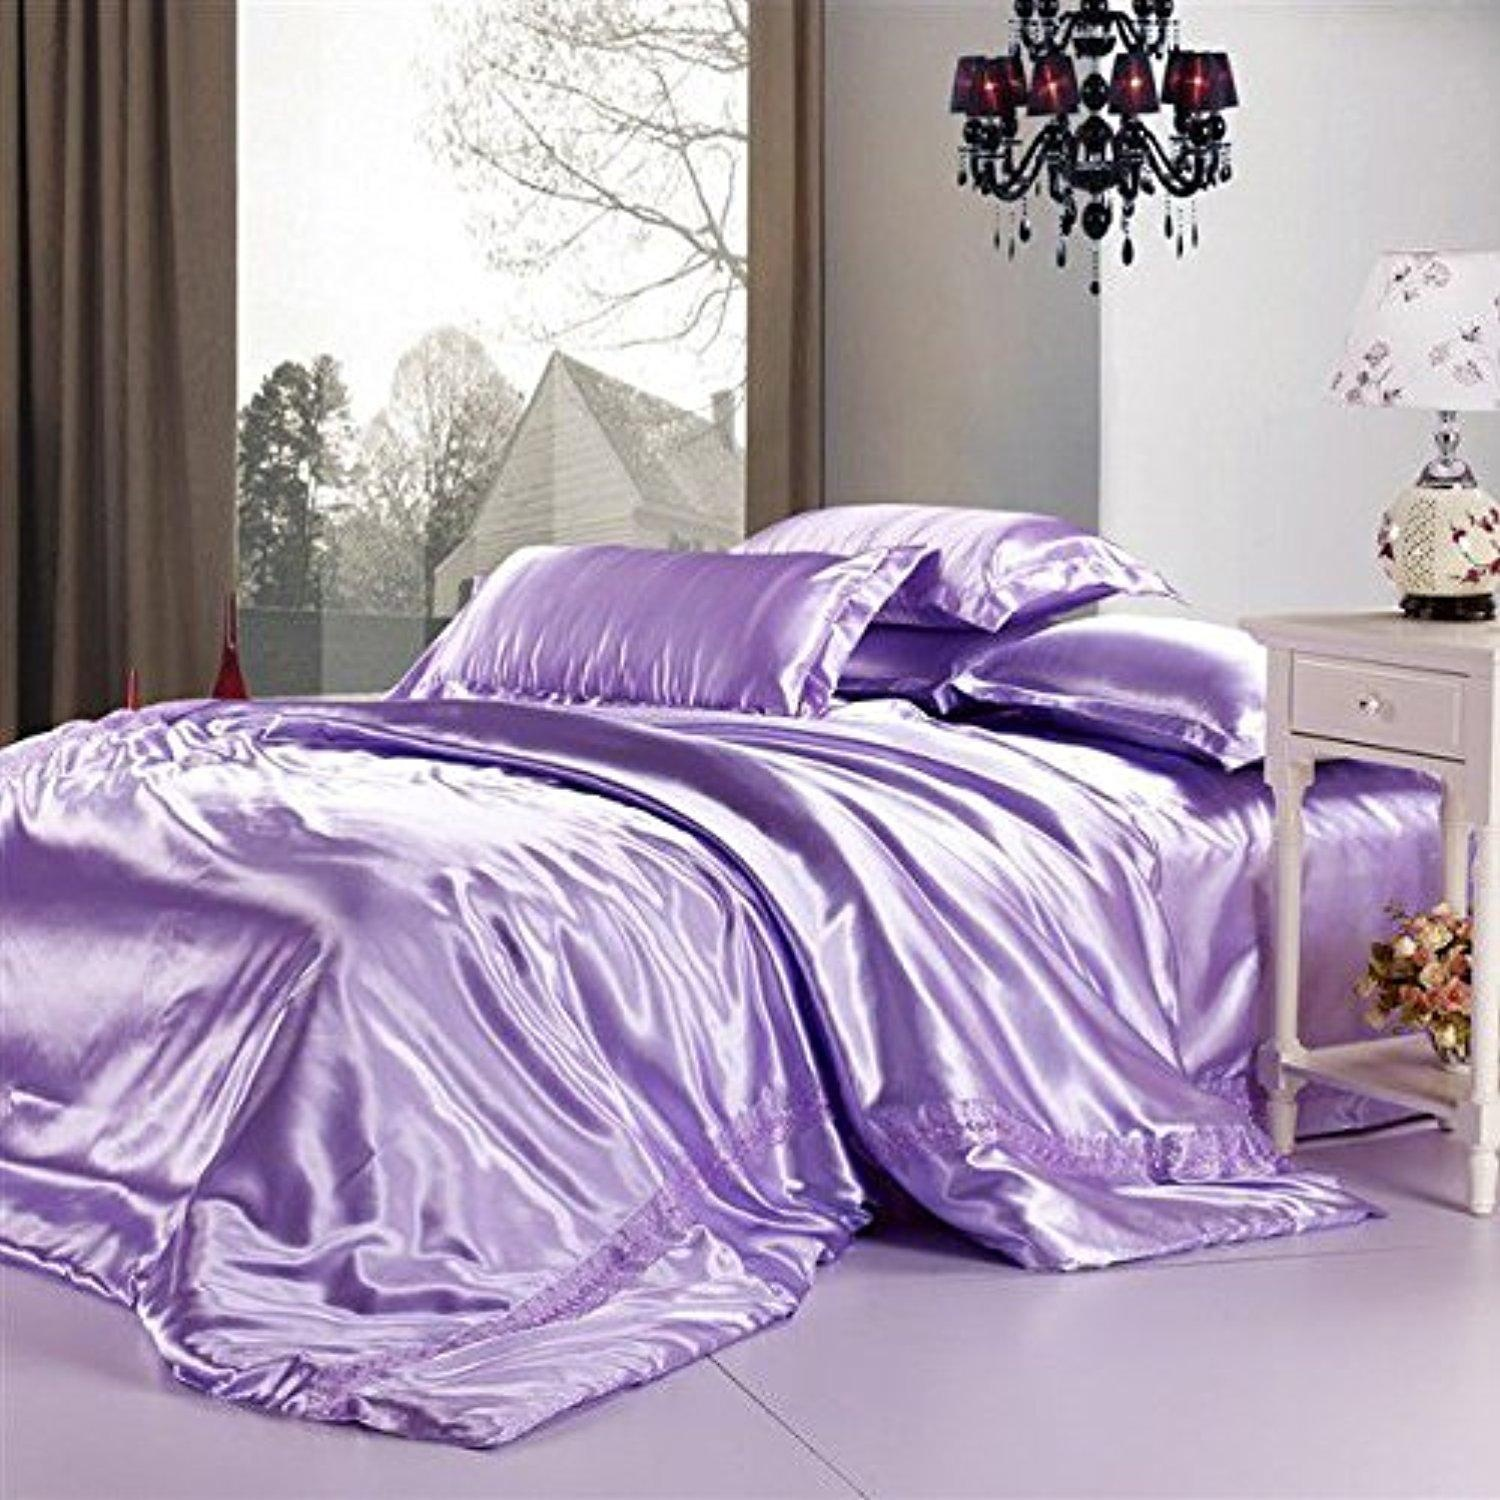 Bridal Satin Deep Pocket Conventional Sheet Set Linen